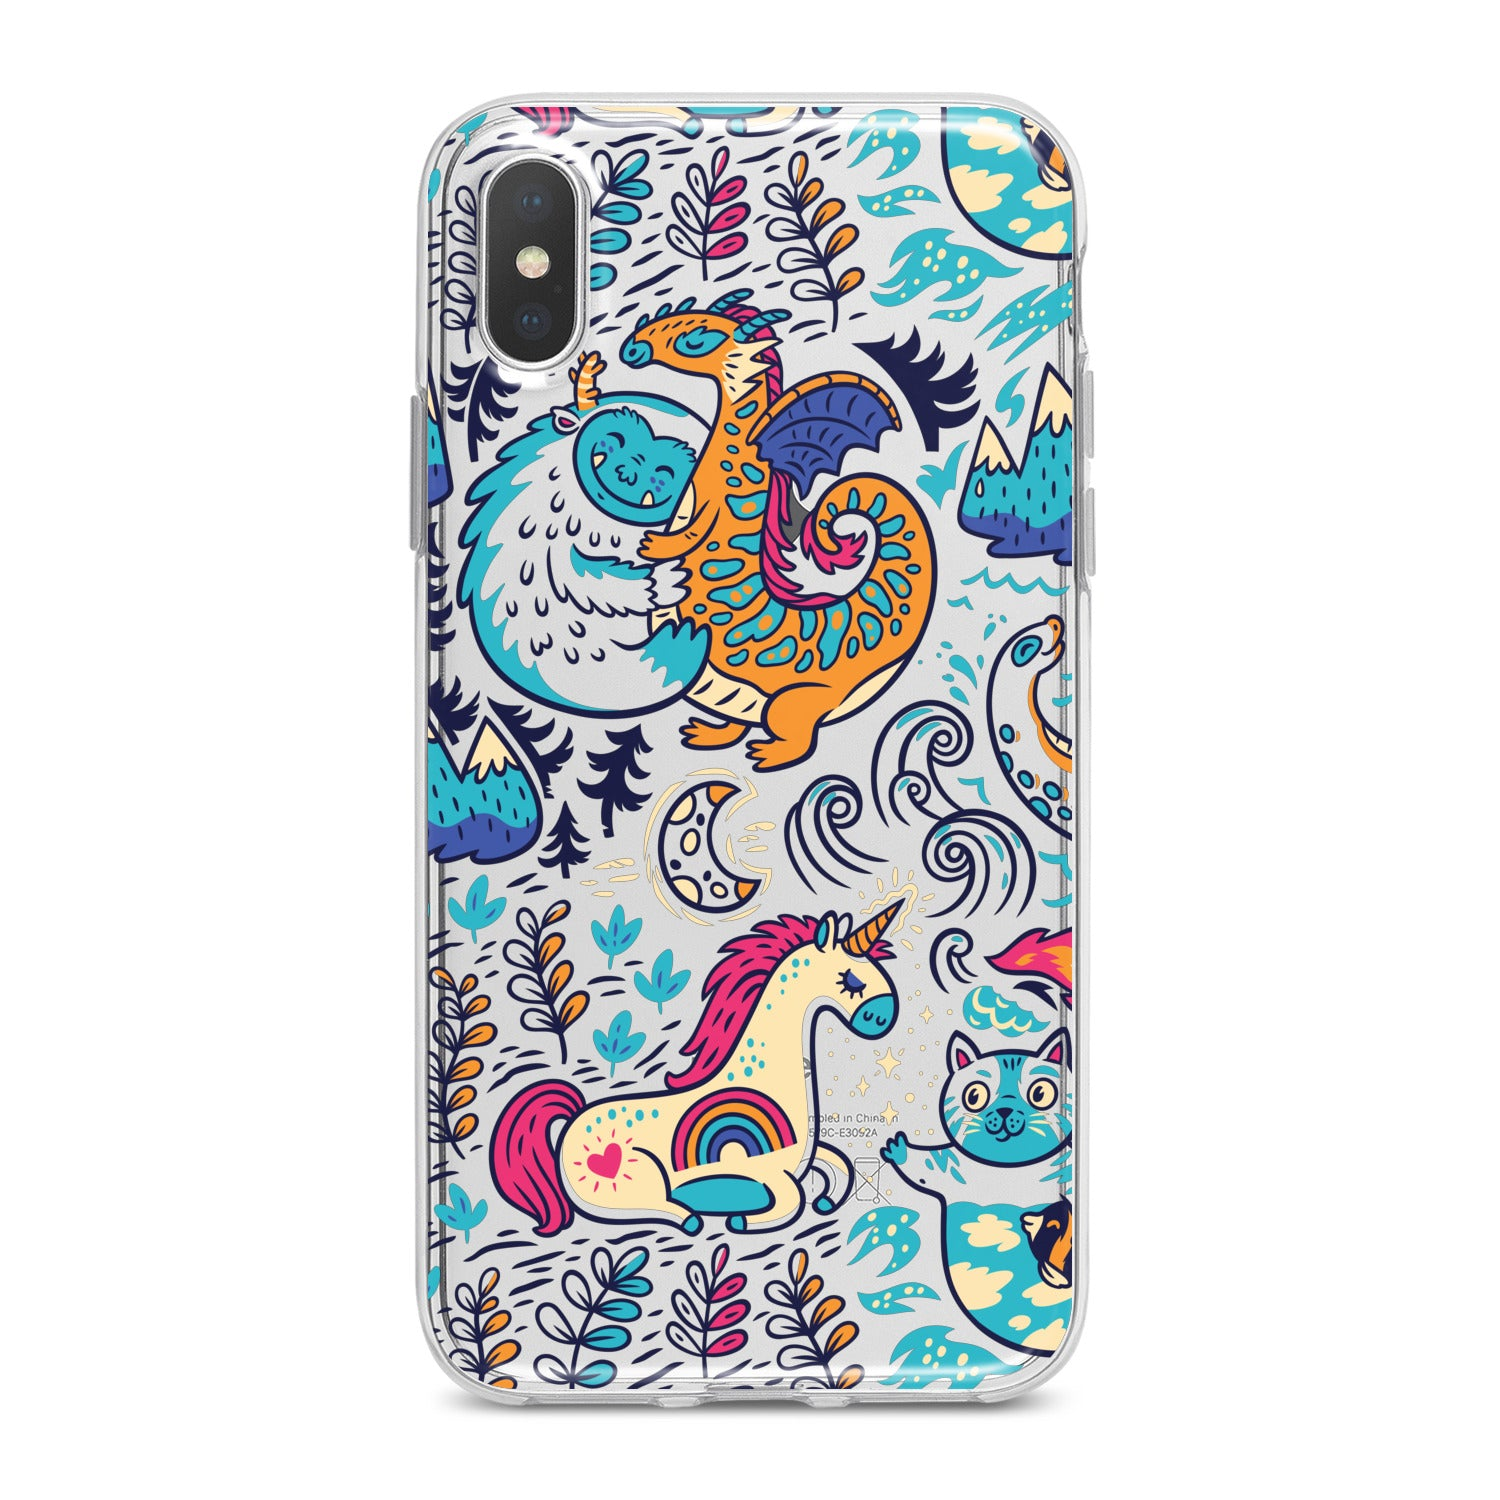 Lex Altern Magic Animals Phone Case for your iPhone & Android phone.